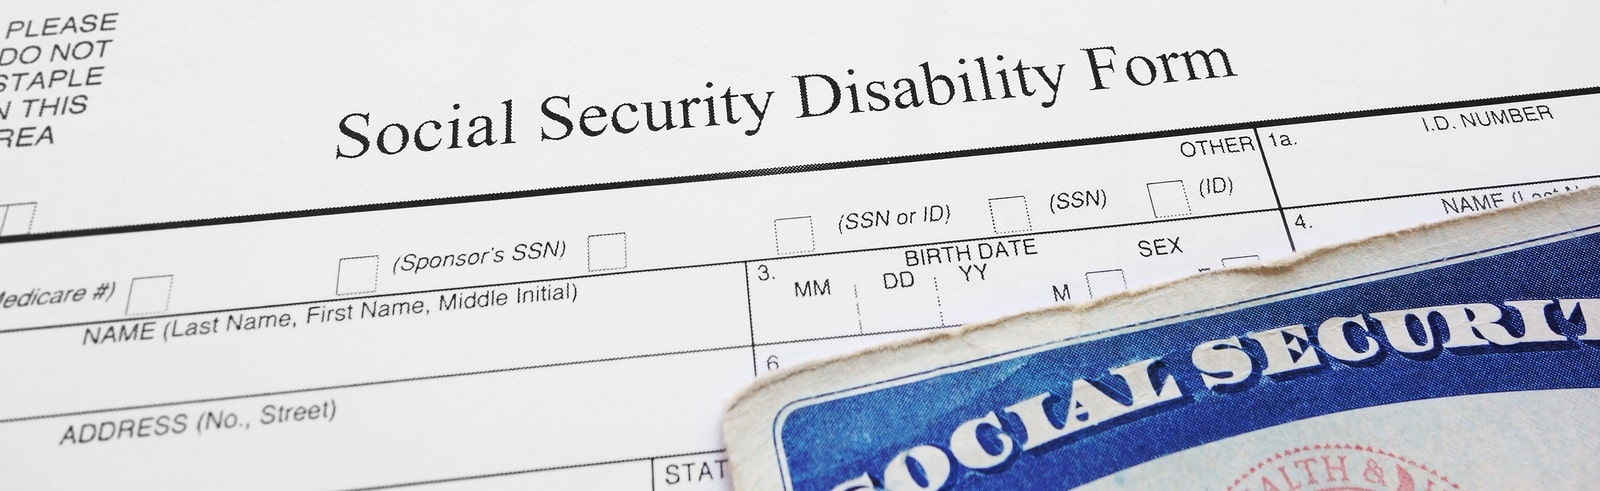 Social Security Disability Myths | Social Security Disability